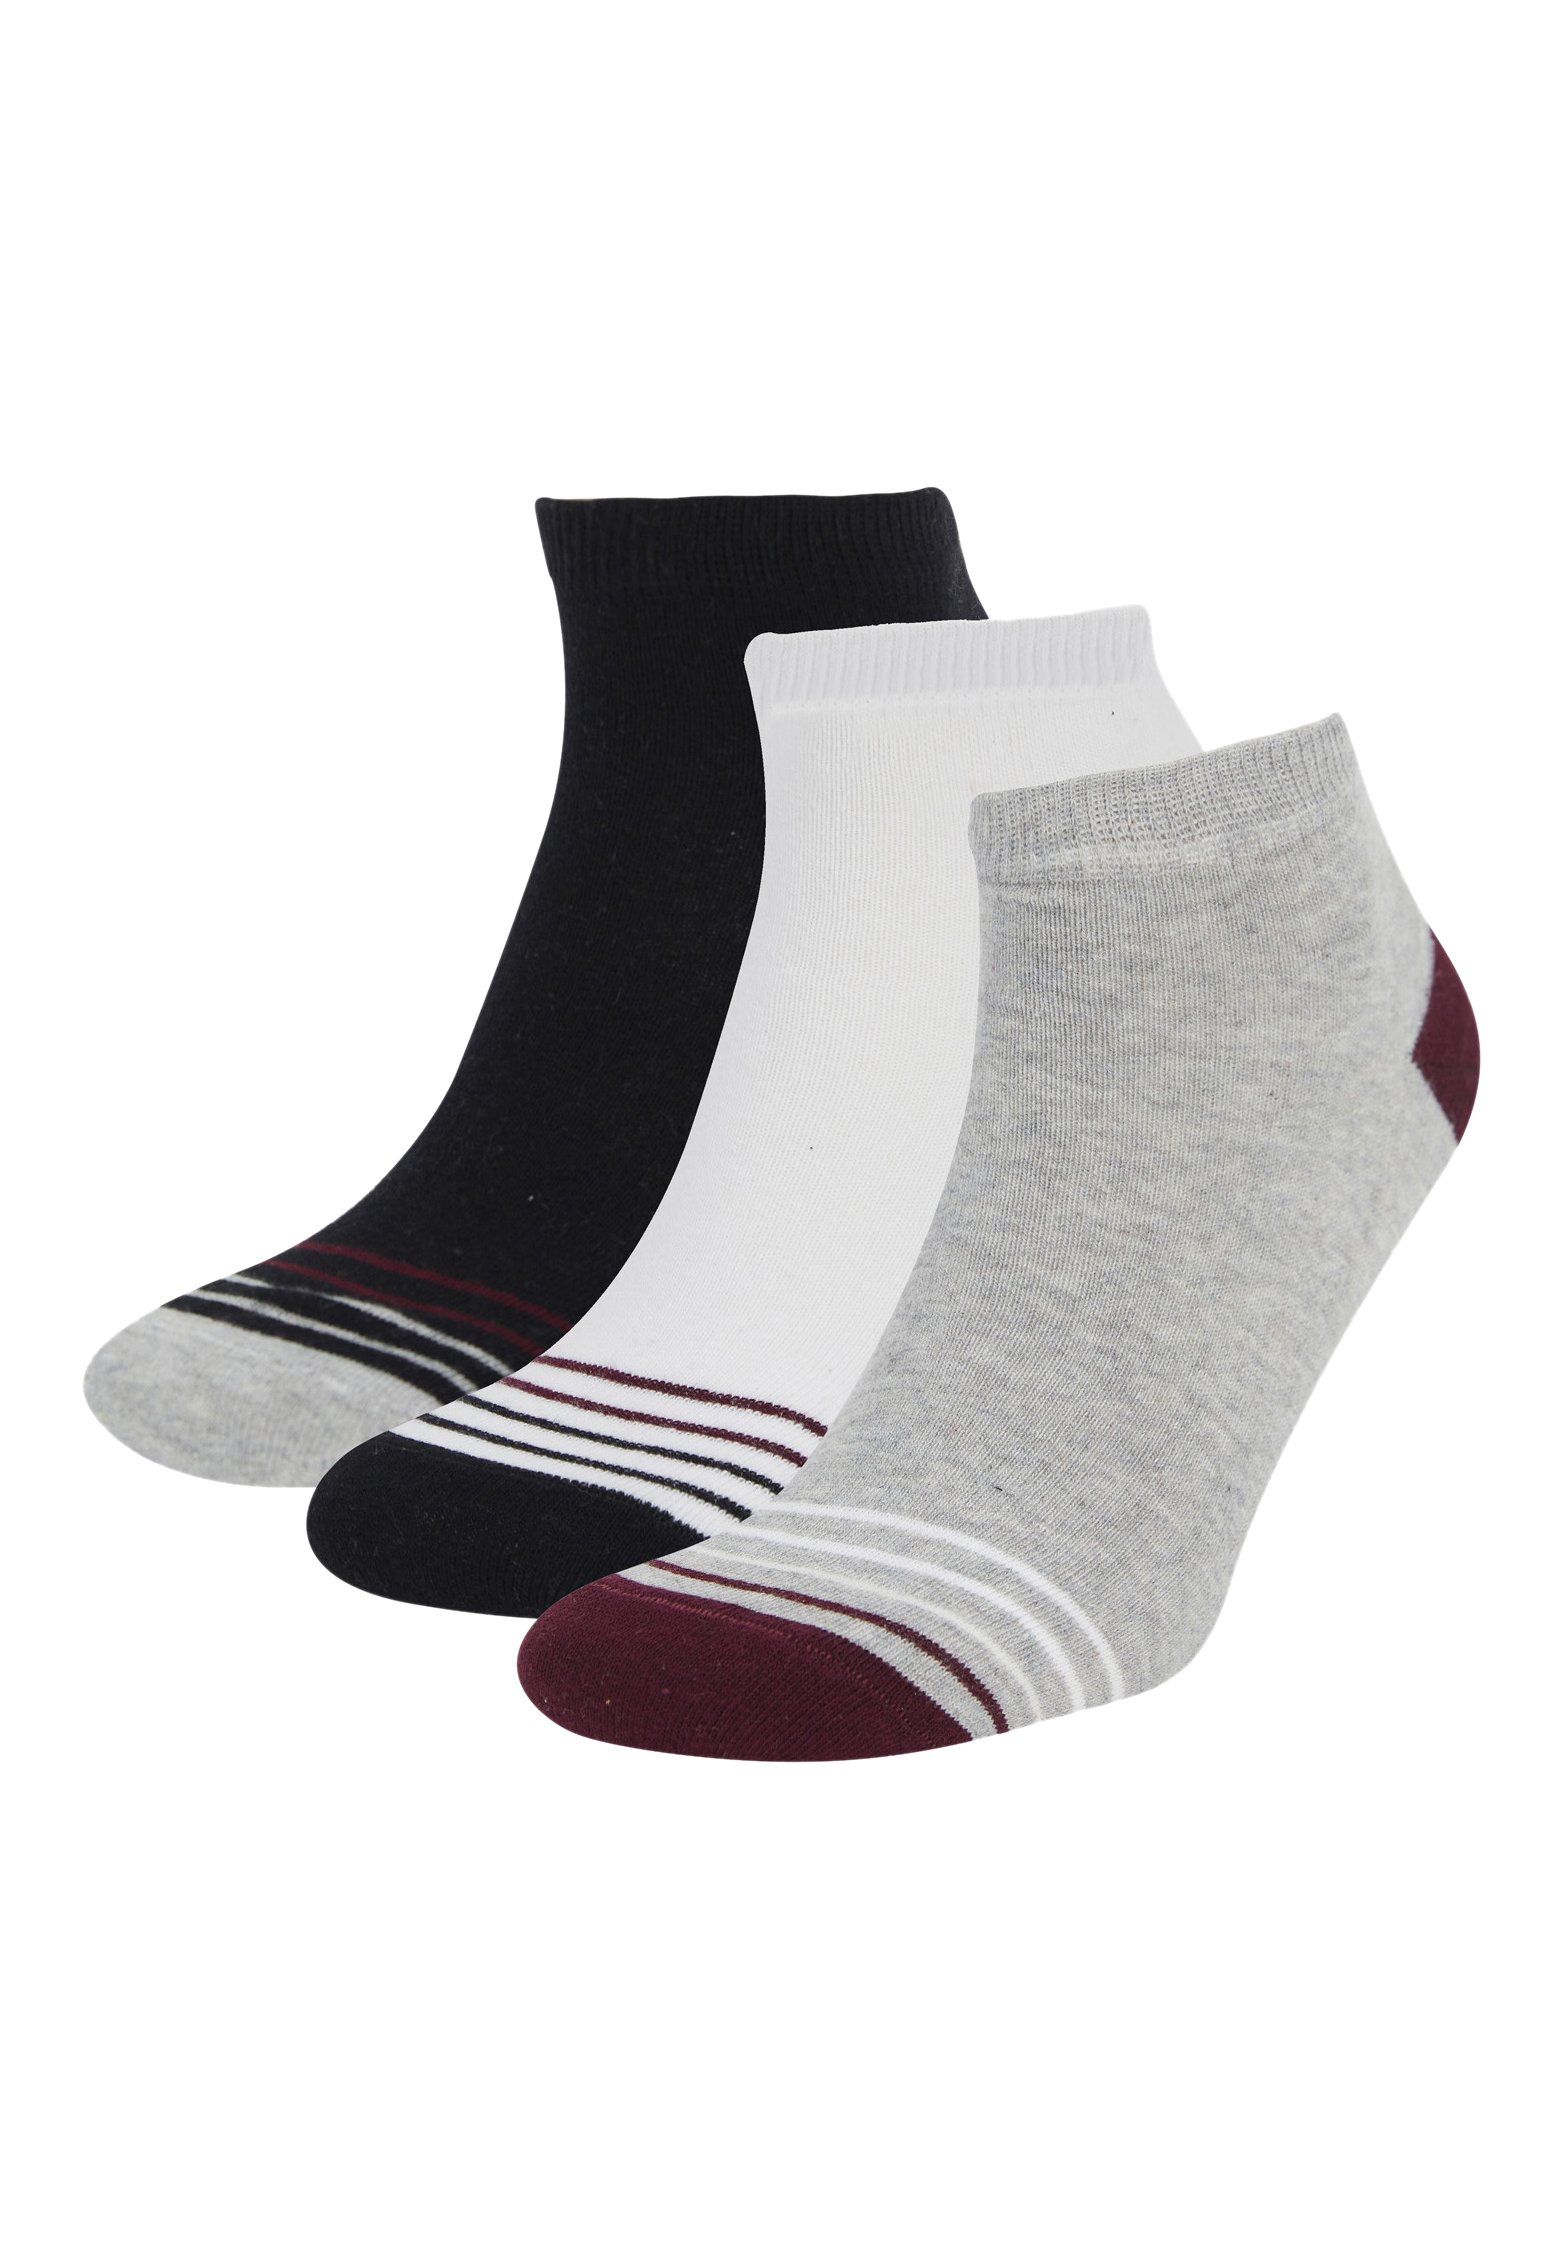 Homme 3 PACK - Socquettes